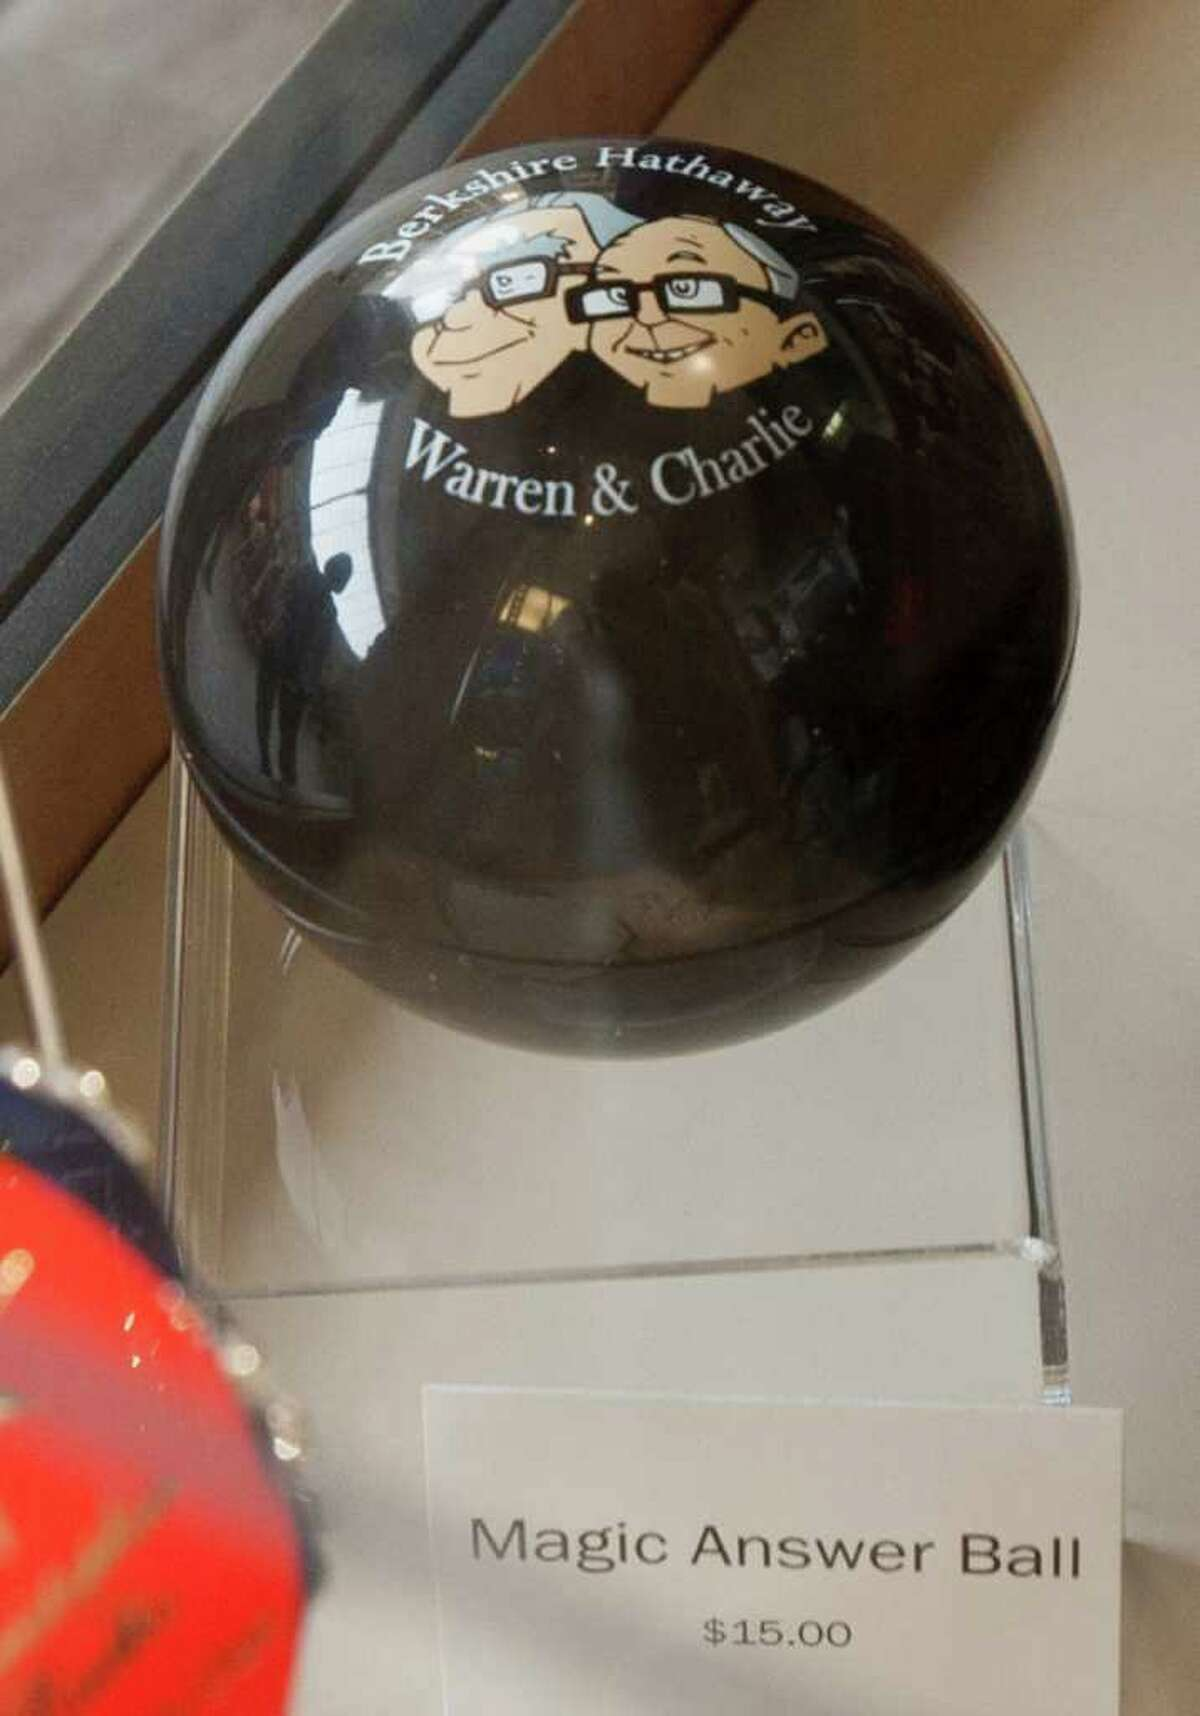 The Berkshire Hathaway Warren & Charlie Magic Answer Ball is offered for sale at a cocktail party hosted by the Berkshire-owned Borsheims jewelry store, in Omaha, Neb., Friday, April 29, 2011. The cocktail party welcomes the many thousands who arrive to Omaha for the annual Berkshire Hathaway shareholders meeting, which starts on Saturday. (AP Photo/Nati Harnik)